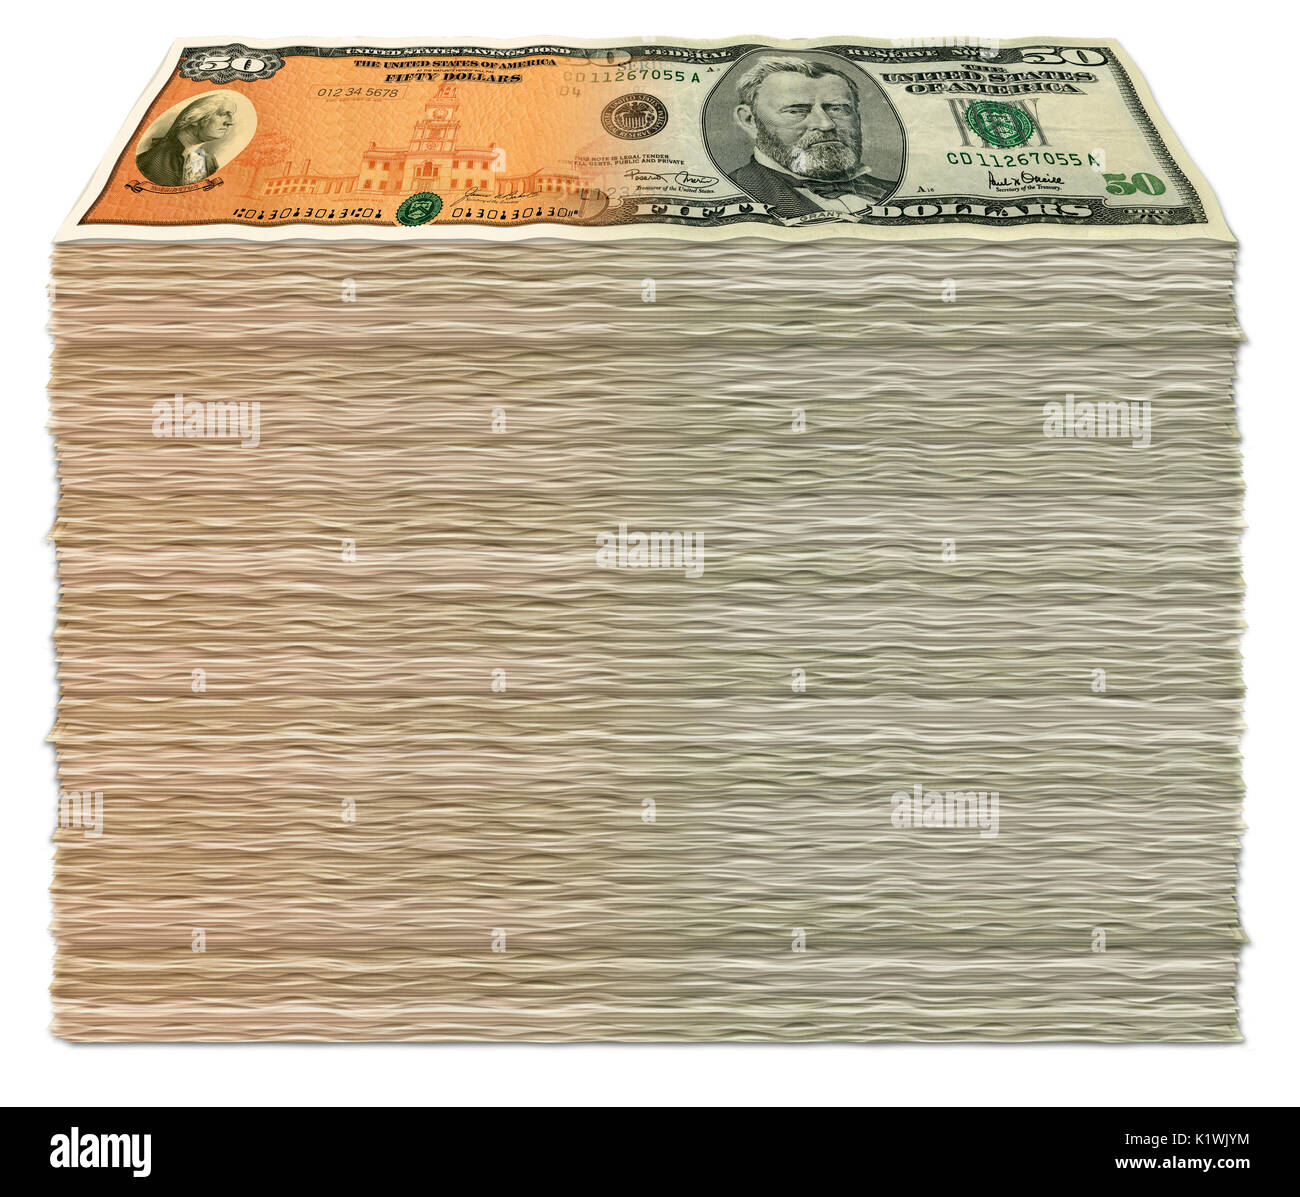 Photo Illustration of a stack of U.S. Savings Bond -50 dollar bill composites. - Stock Image